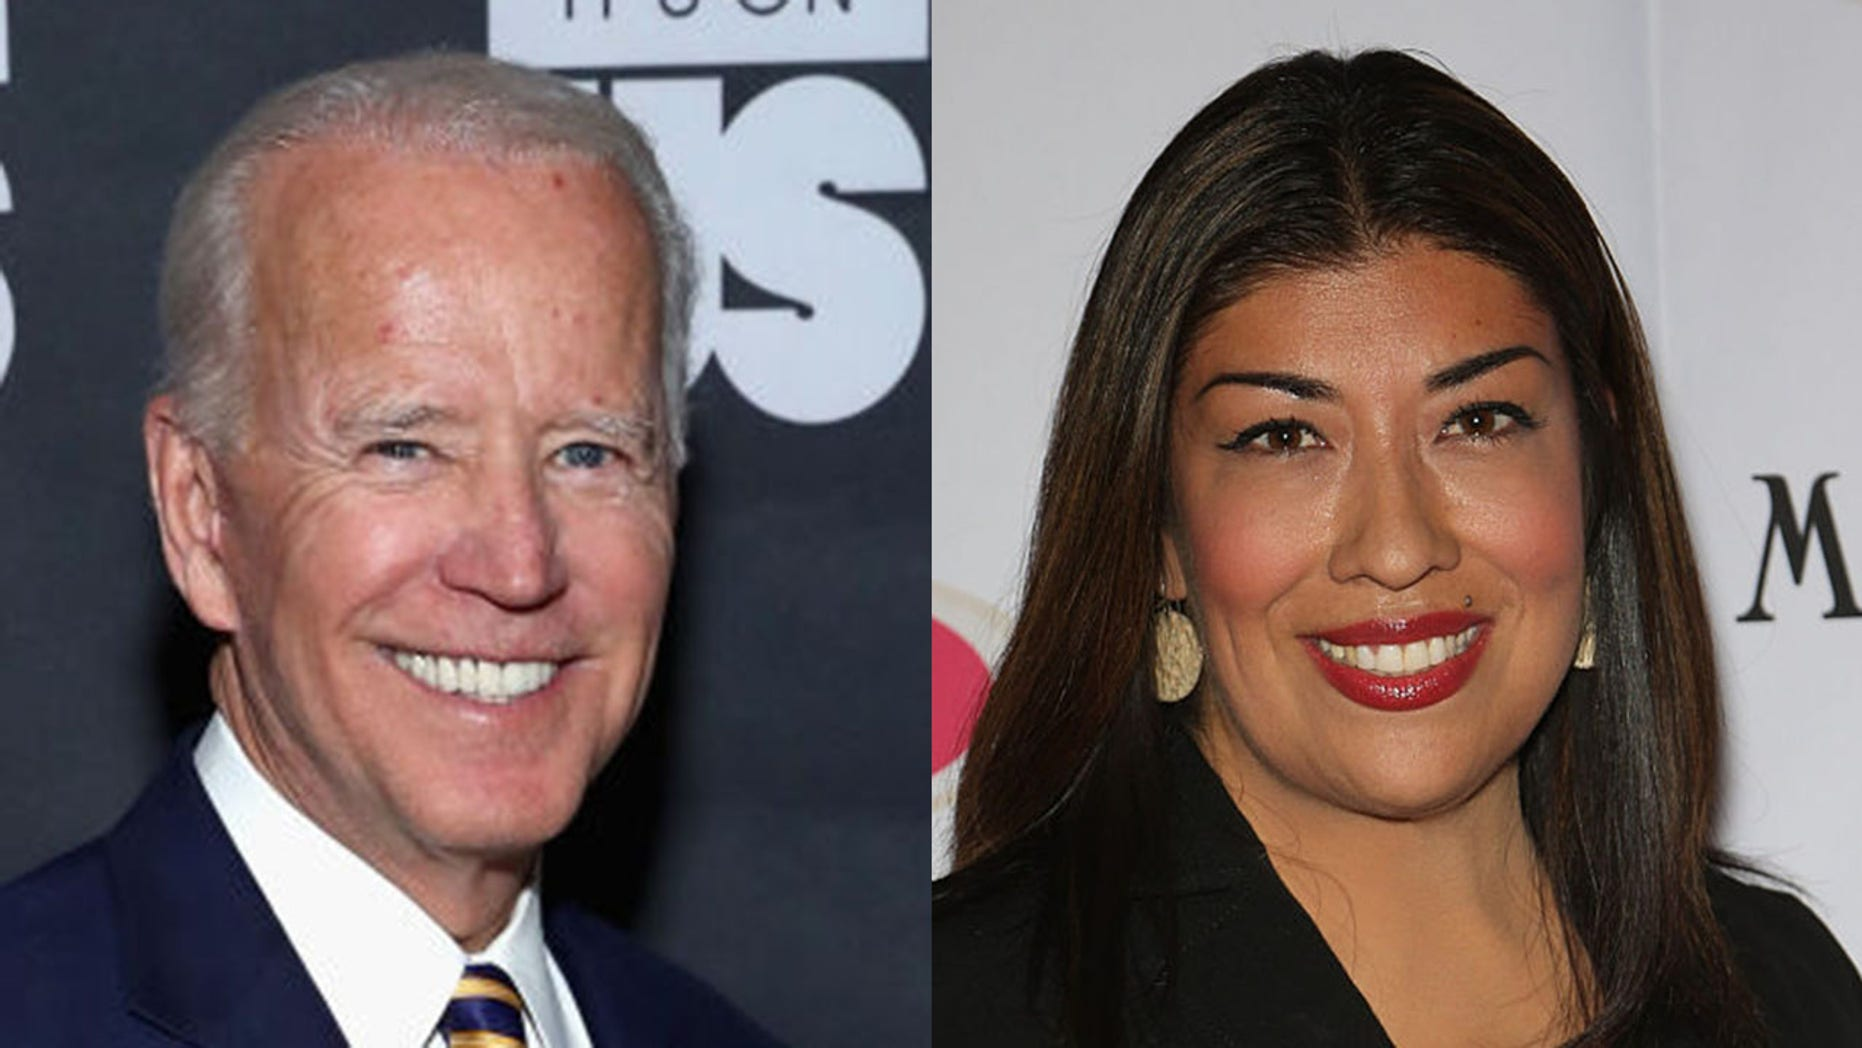 A former Democratic candidate in Nevada has accused former Vice President Joe Biden of inappropriate conduct at a 2014 campaign event.